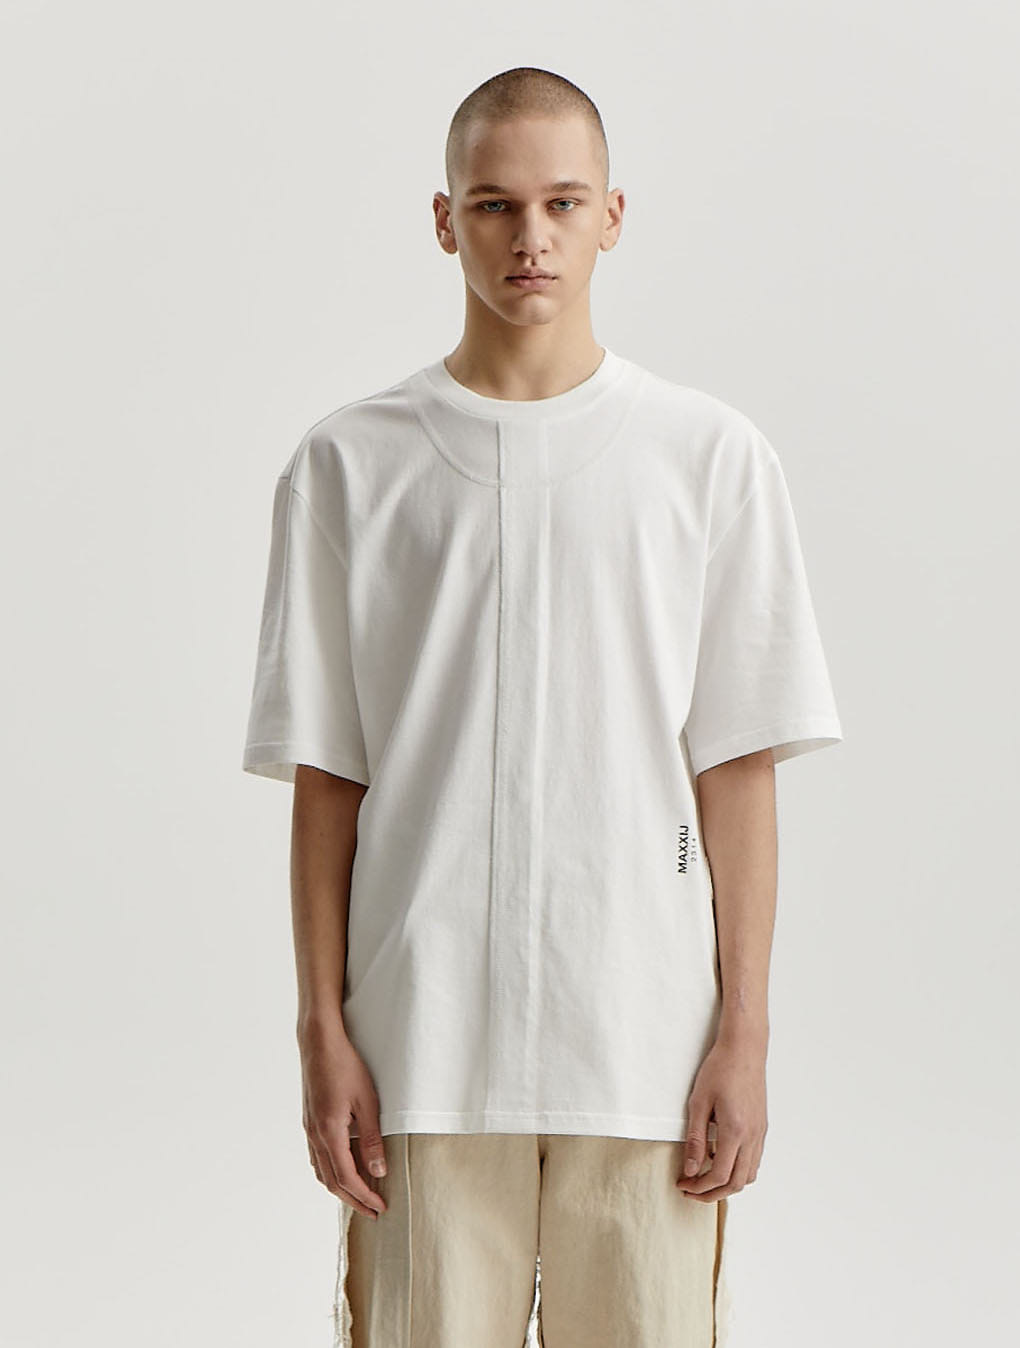 White Signature Raw Edge Double Stitched Jersey T-shirt